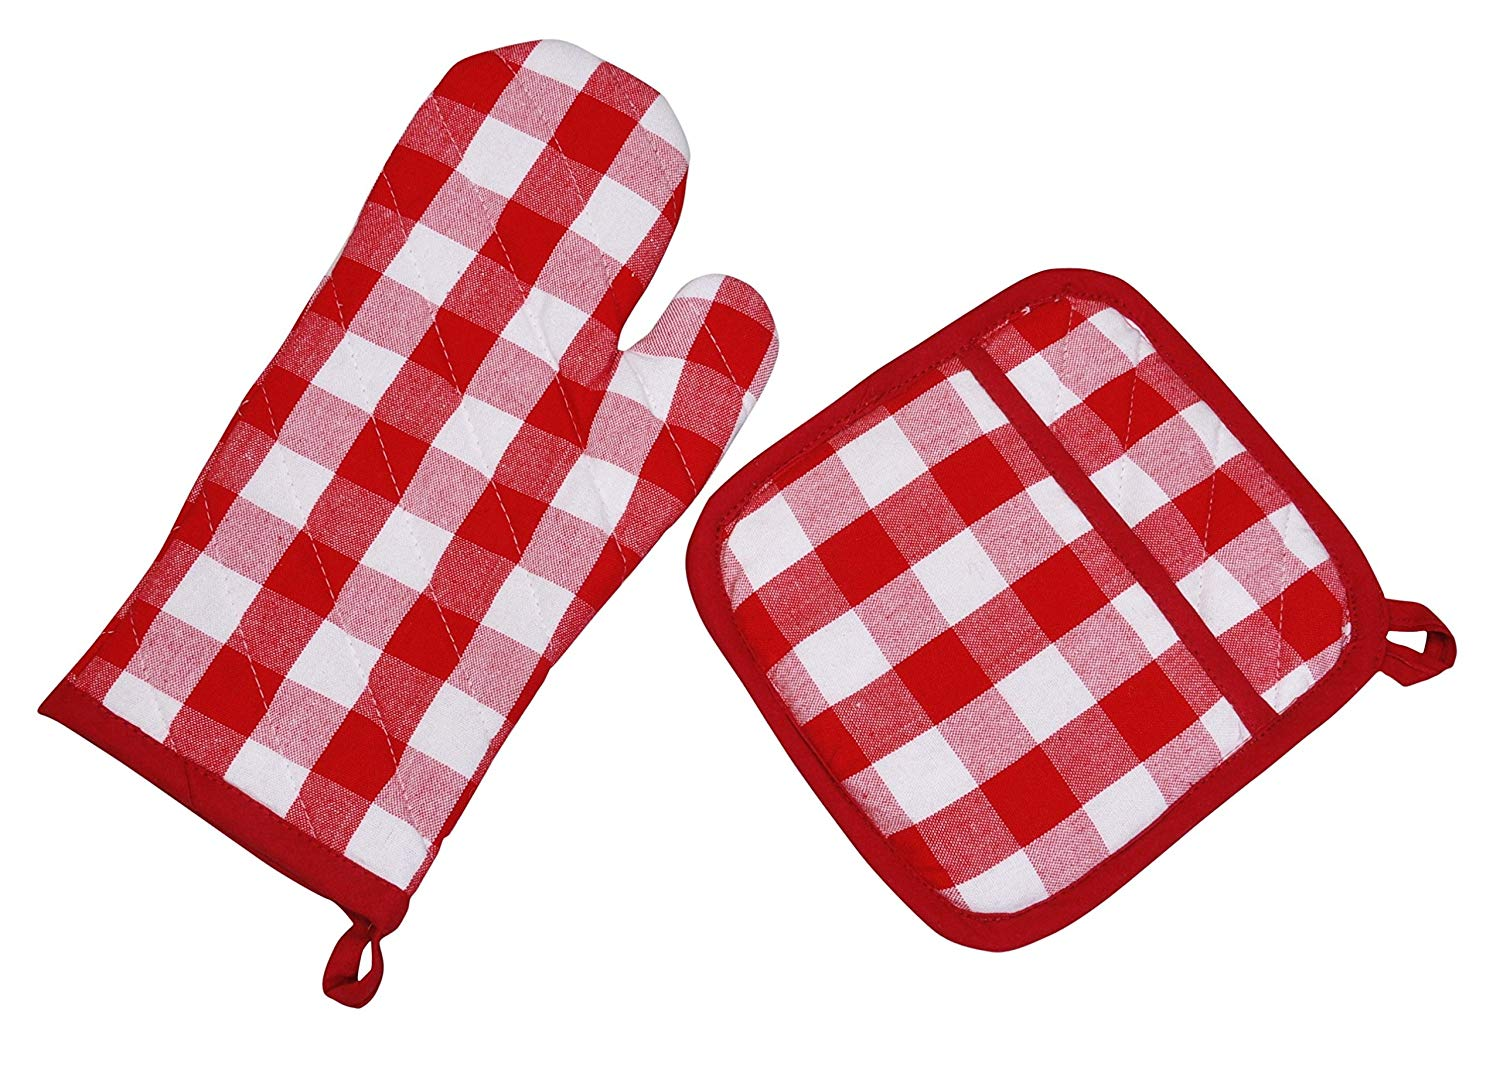 Yourtablecloth Set of Checkered Oven Mitt and Pot Holder or Oven Gloves-100% Cotton, Heat Resistance, Superior Protection & Comfort–Gingham design-Machine Washable Red and White